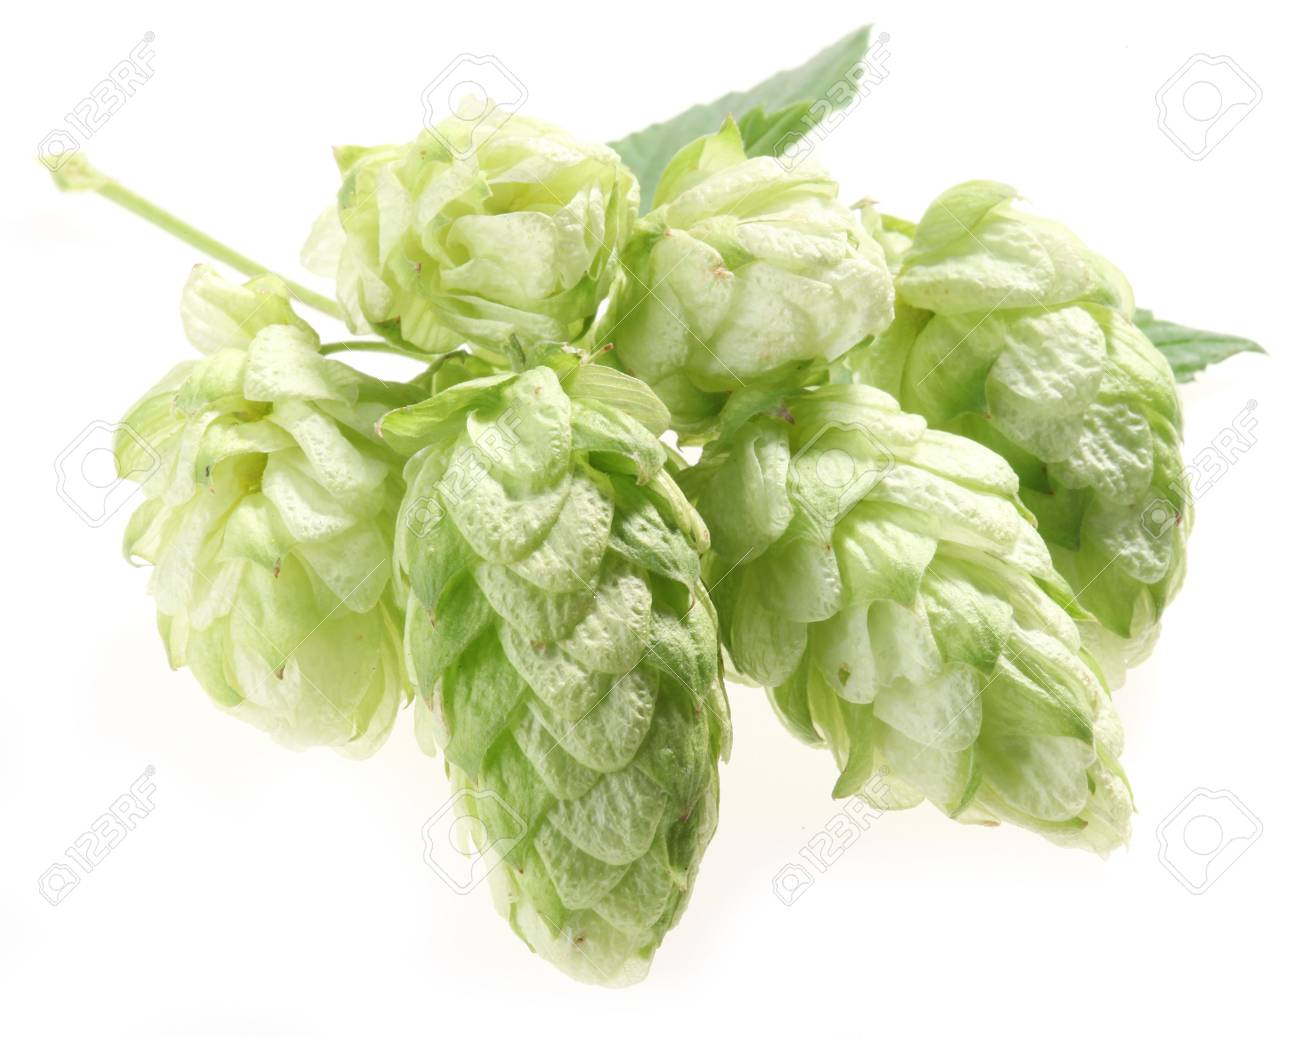 branch of hops on a white background Stock Photo - 7836440